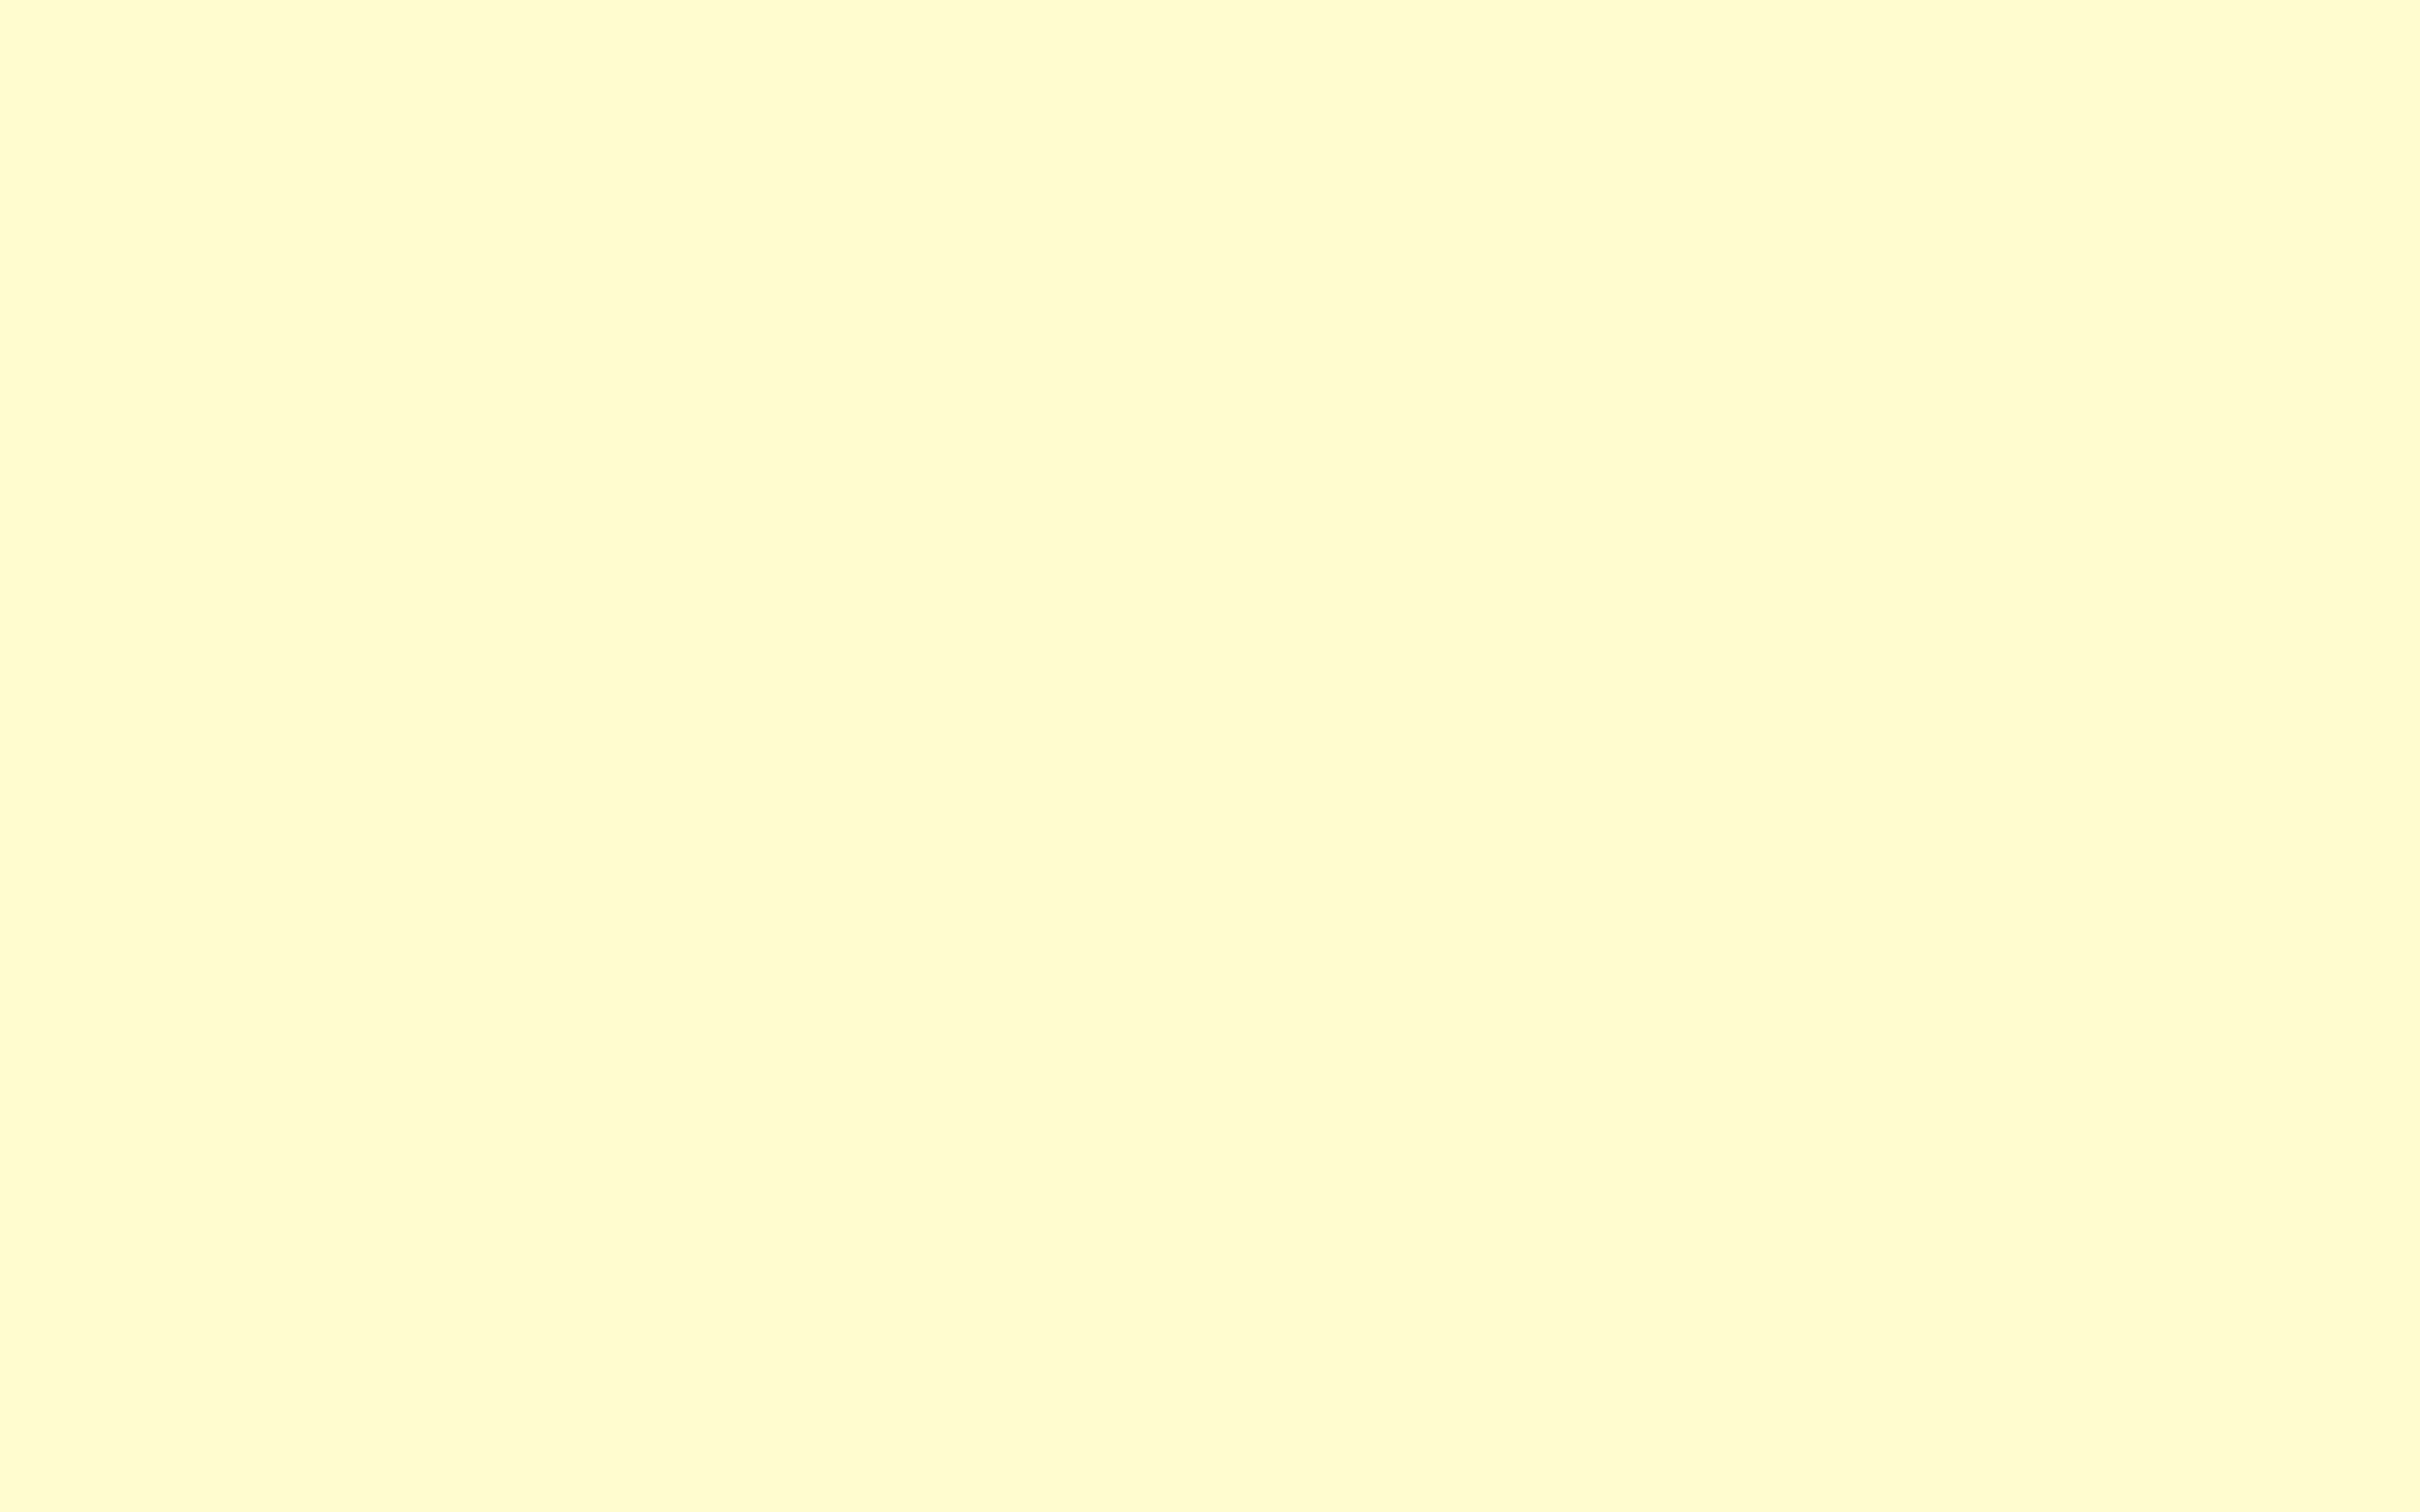 Cream Colored Backgrounds ·①